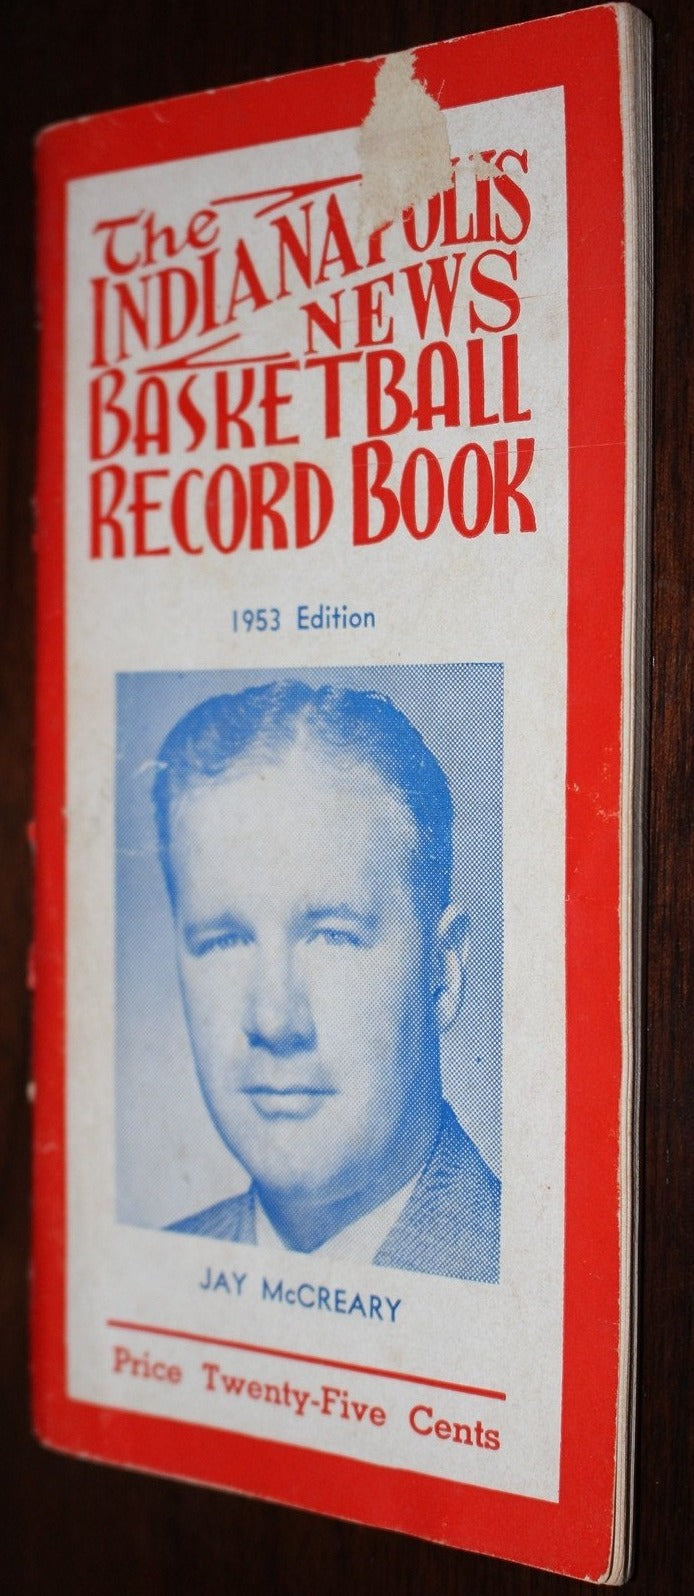 1953 Indianapolis News Basketball Record Book - Vintage Indy Sports